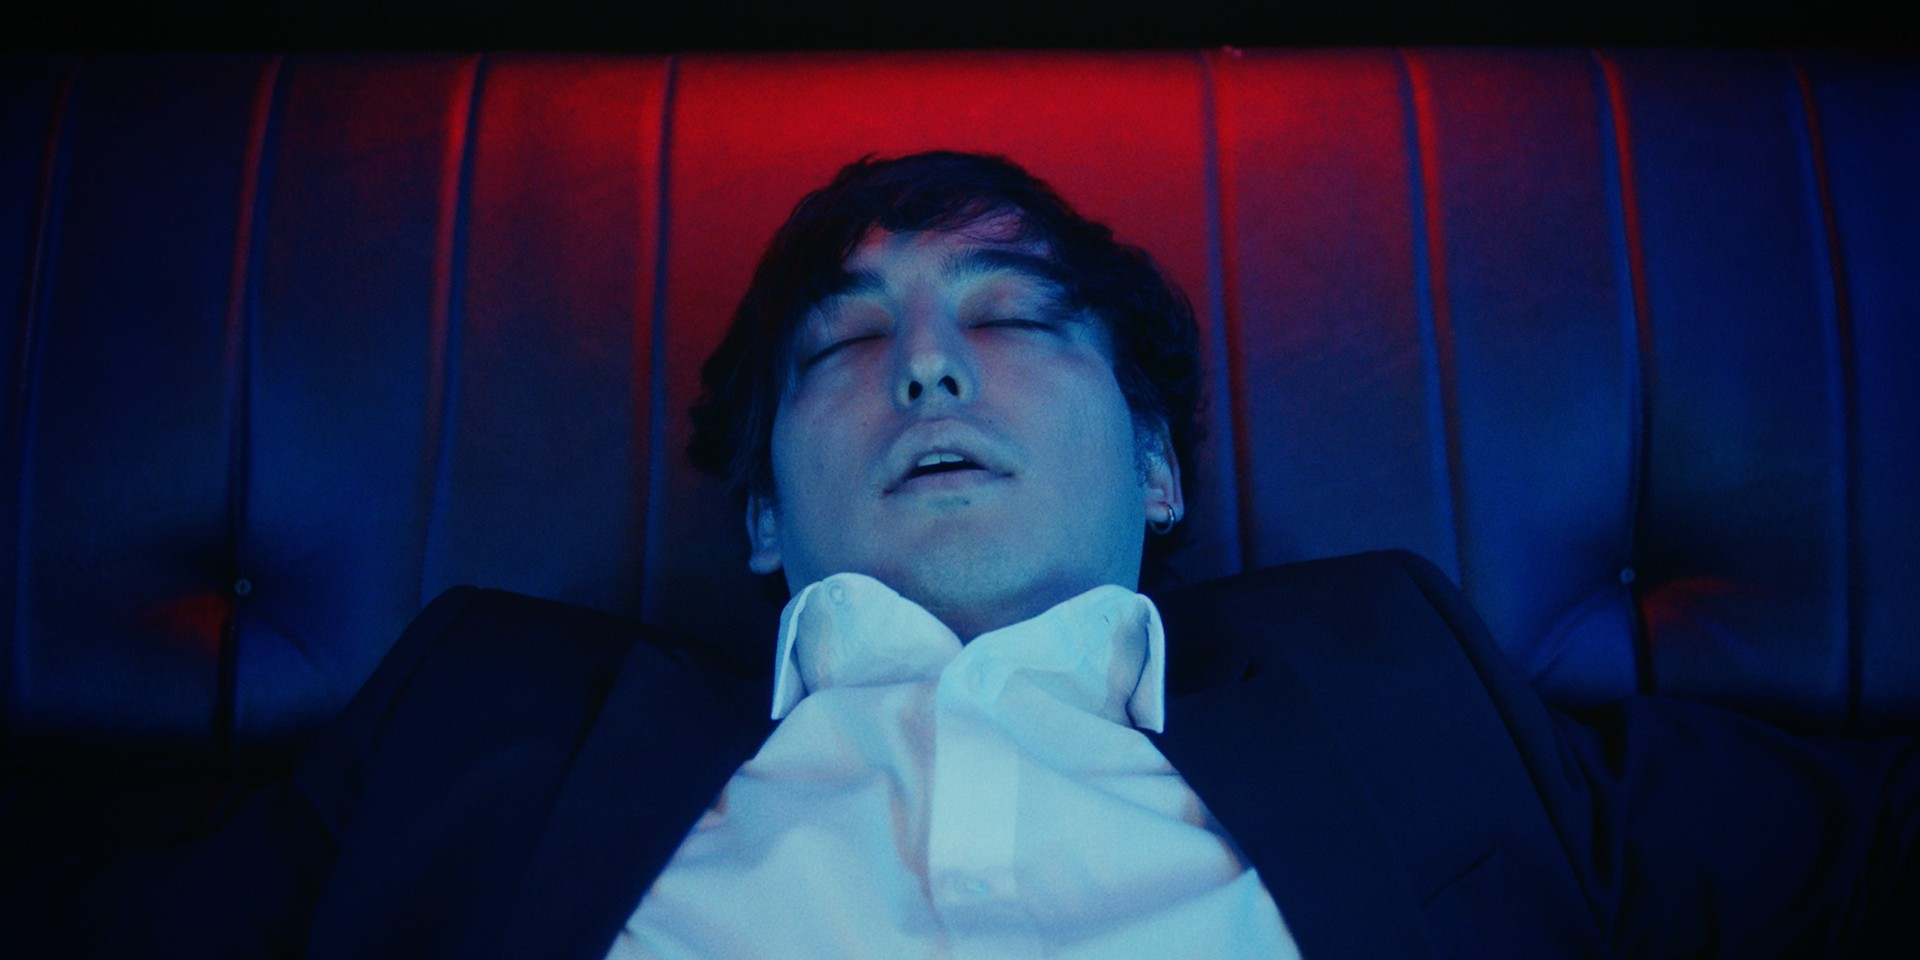 Here's how to win tickets to Joji's first online concert, The Extravaganza